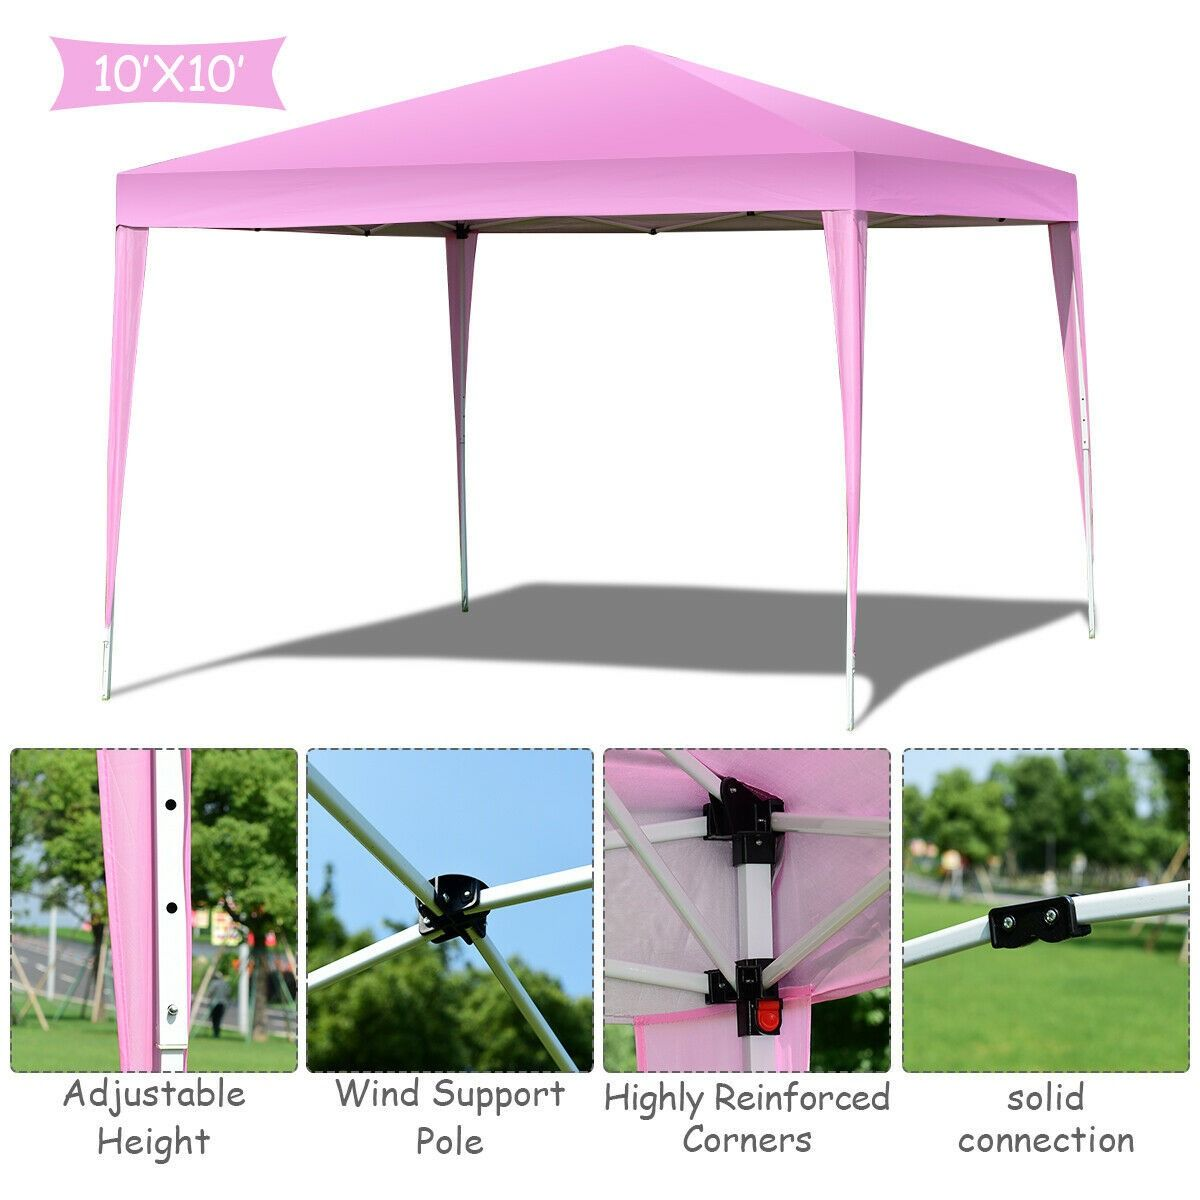 Outdoor Foldable Portable Shelter Gazebo Canopy Tent Canopy Tent